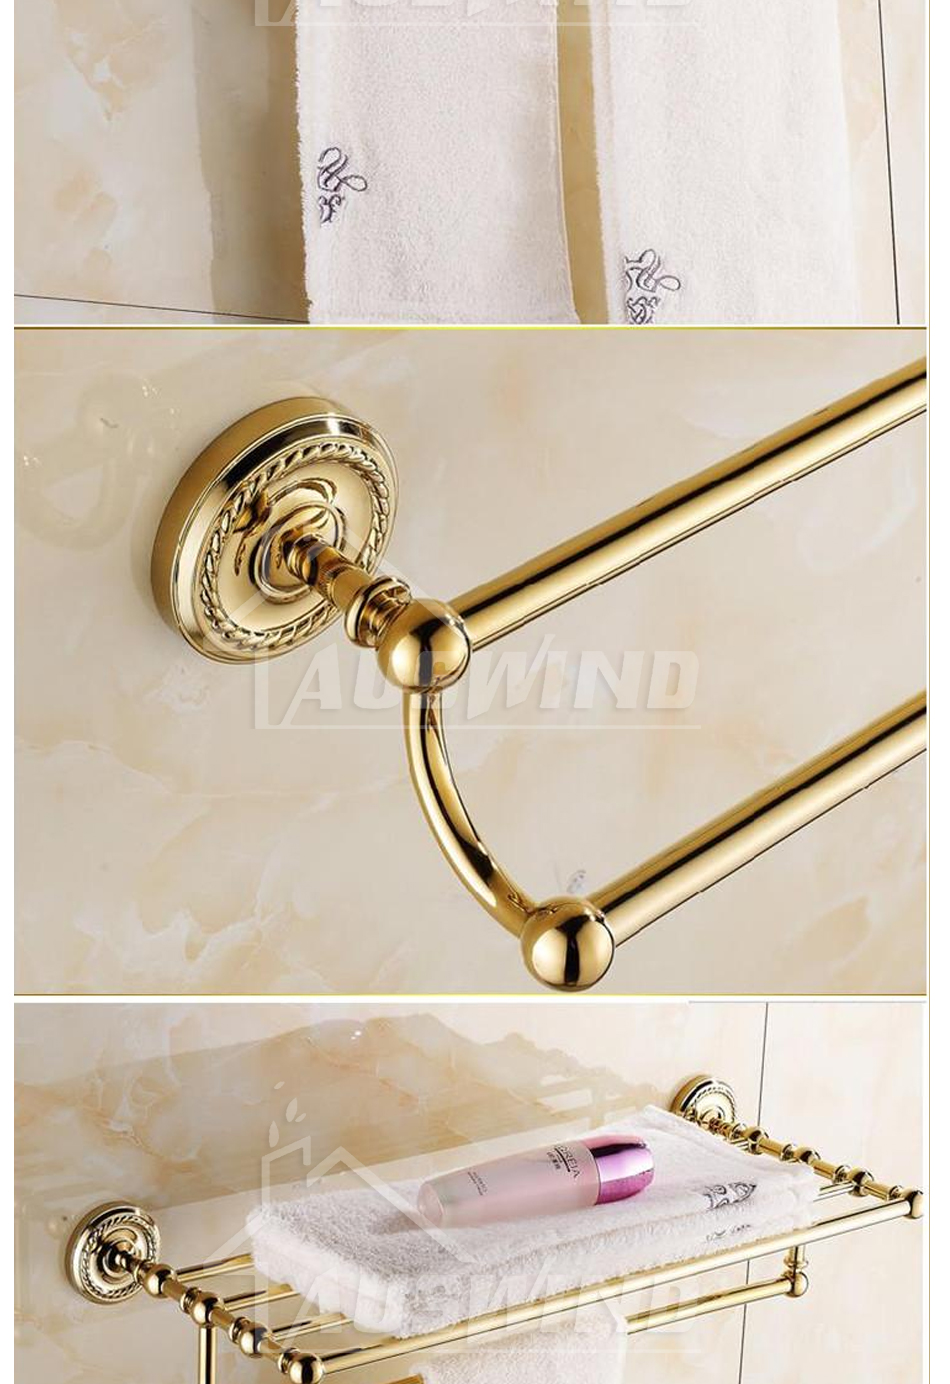 Europe Antique Gold Bathroom Accessories - Daily Thunder Deals